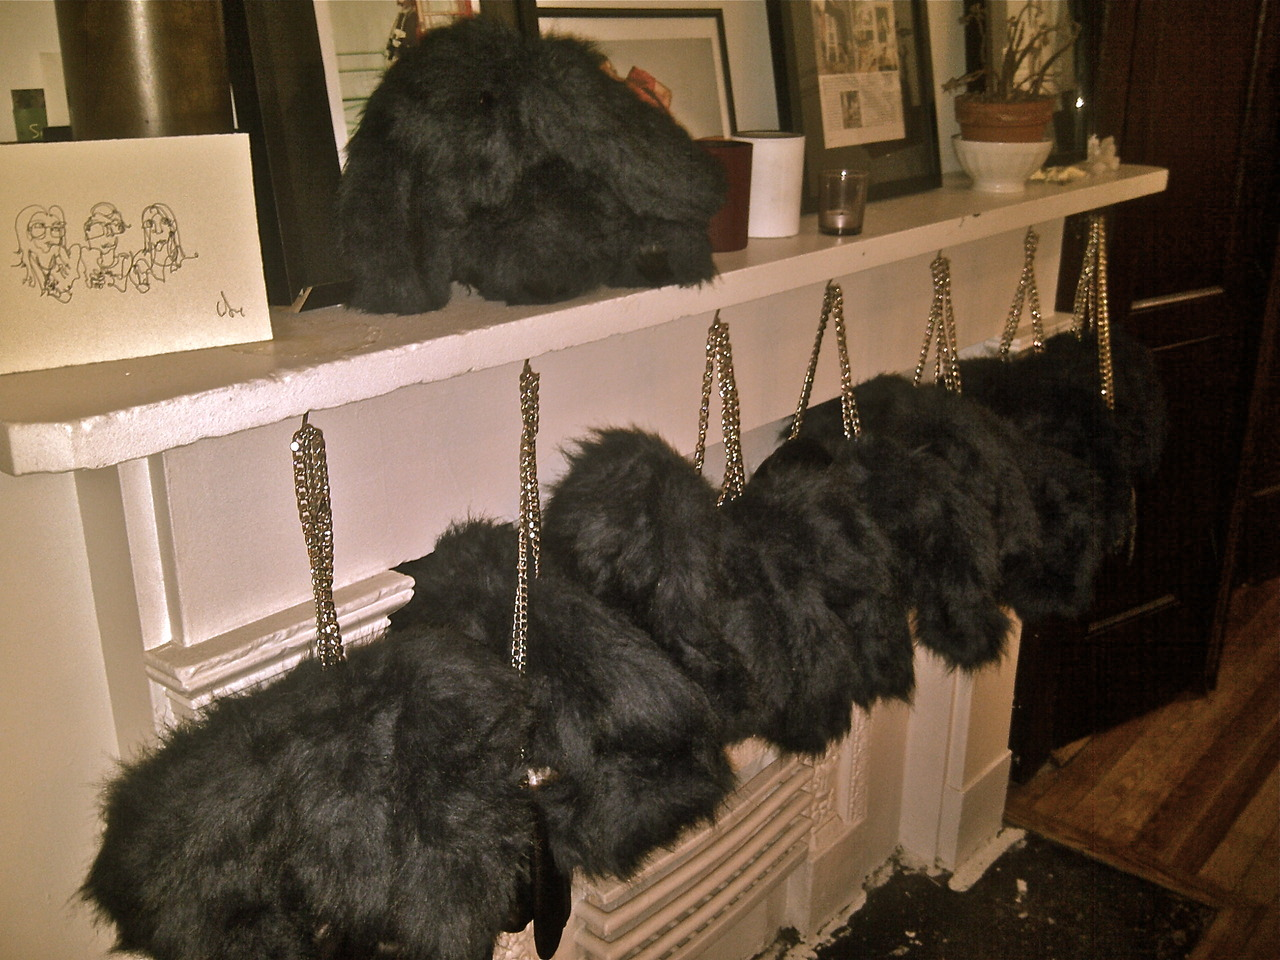 BUNNY BAGS IN THE HOUSE!  *AW12 Exclusive Navy Blue Faux Fur Bunny… named Franny*